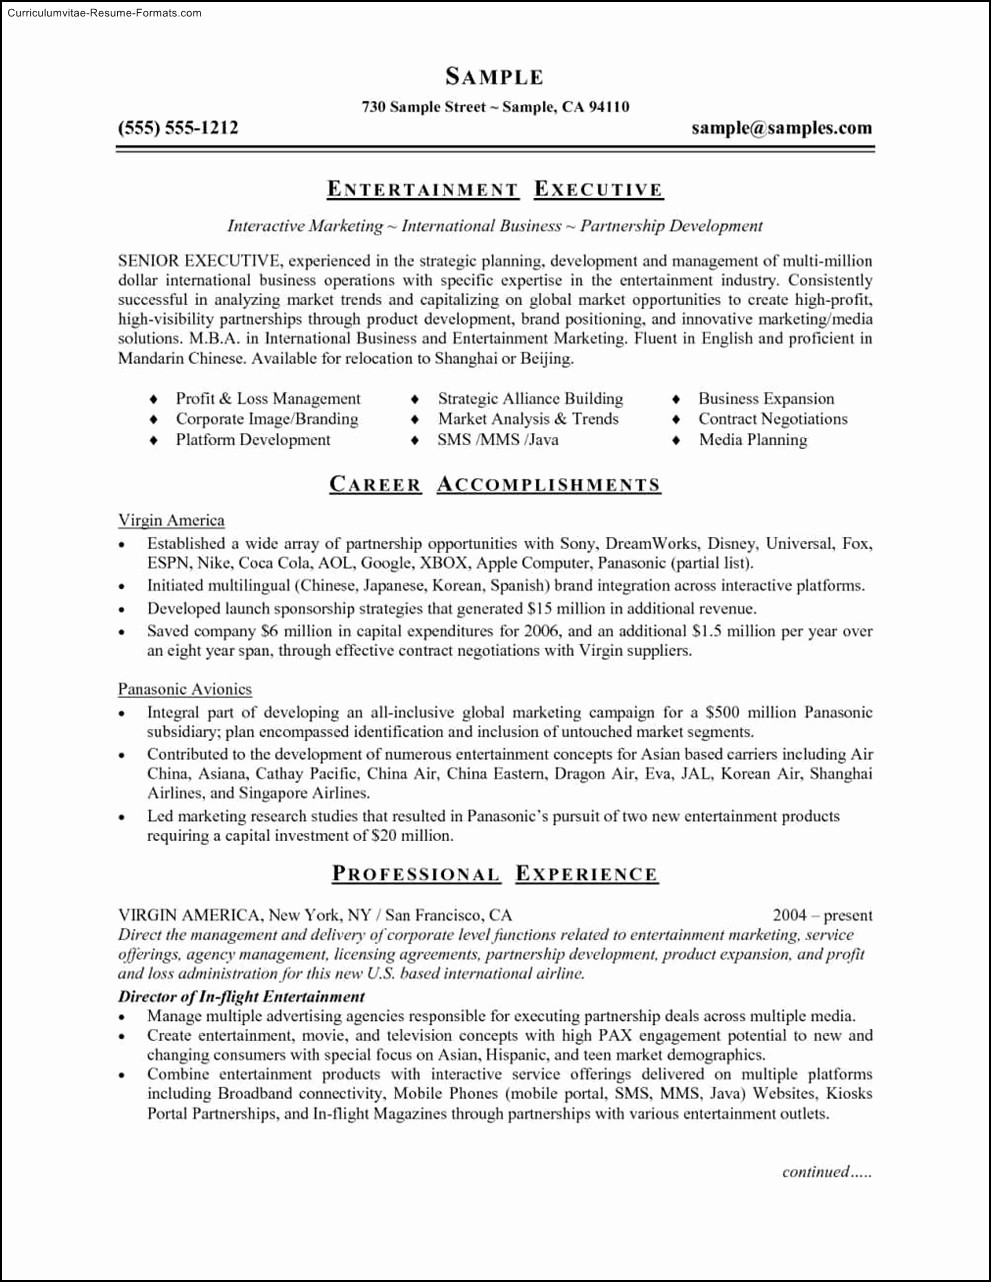 Microsoft Office Resume Templates Downloads Lovely Microsoft Word 2003 Resume Template Free Download Free